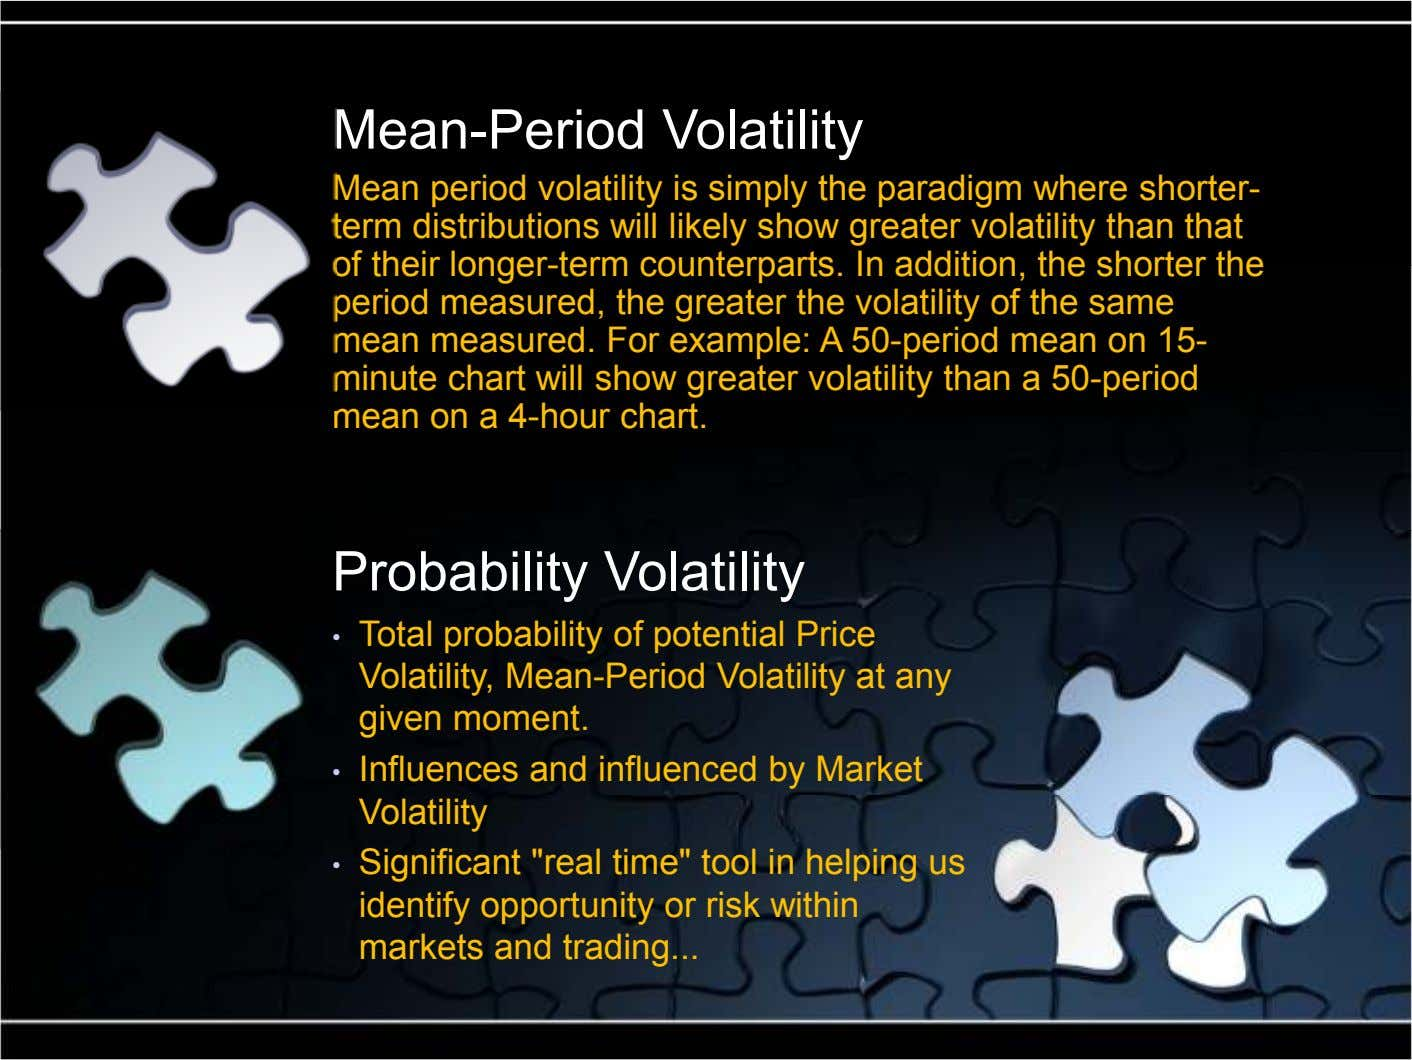 Mean-Period Volatility Mean period volatility is simply the paradigm where shorter- term distributions will likely show